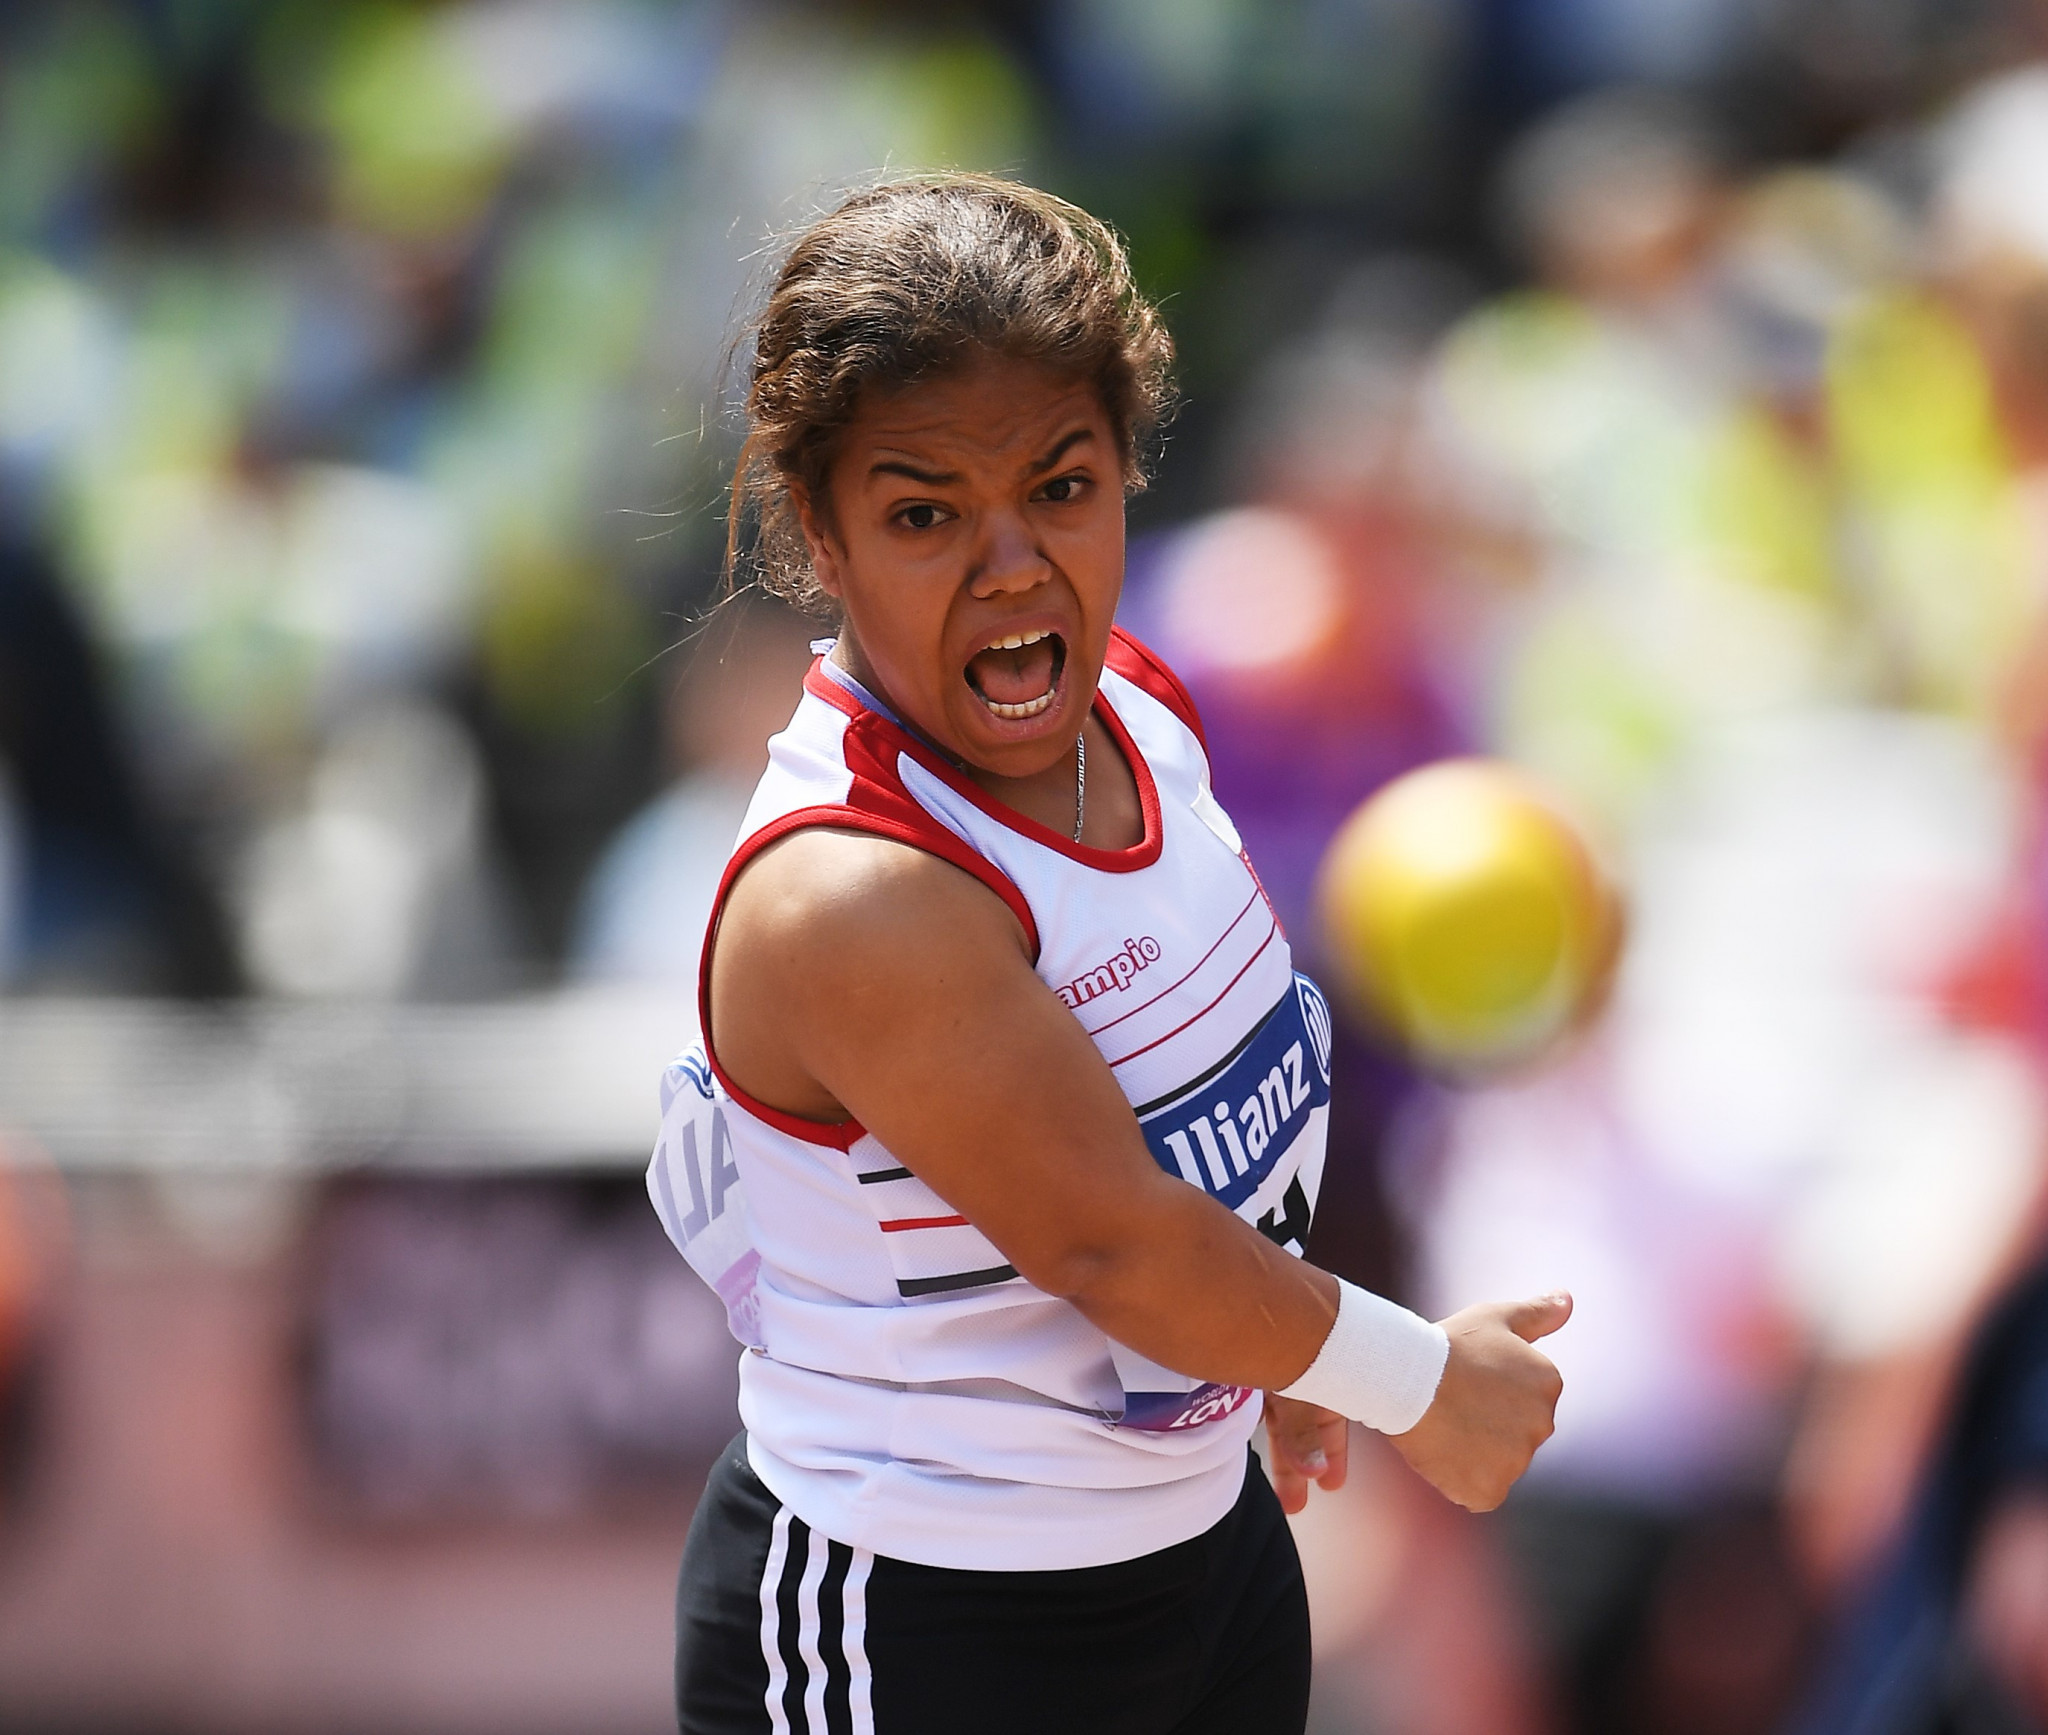 Rodriguez wins long jump on second day of World Para Athletics Grand Prix in Tunis